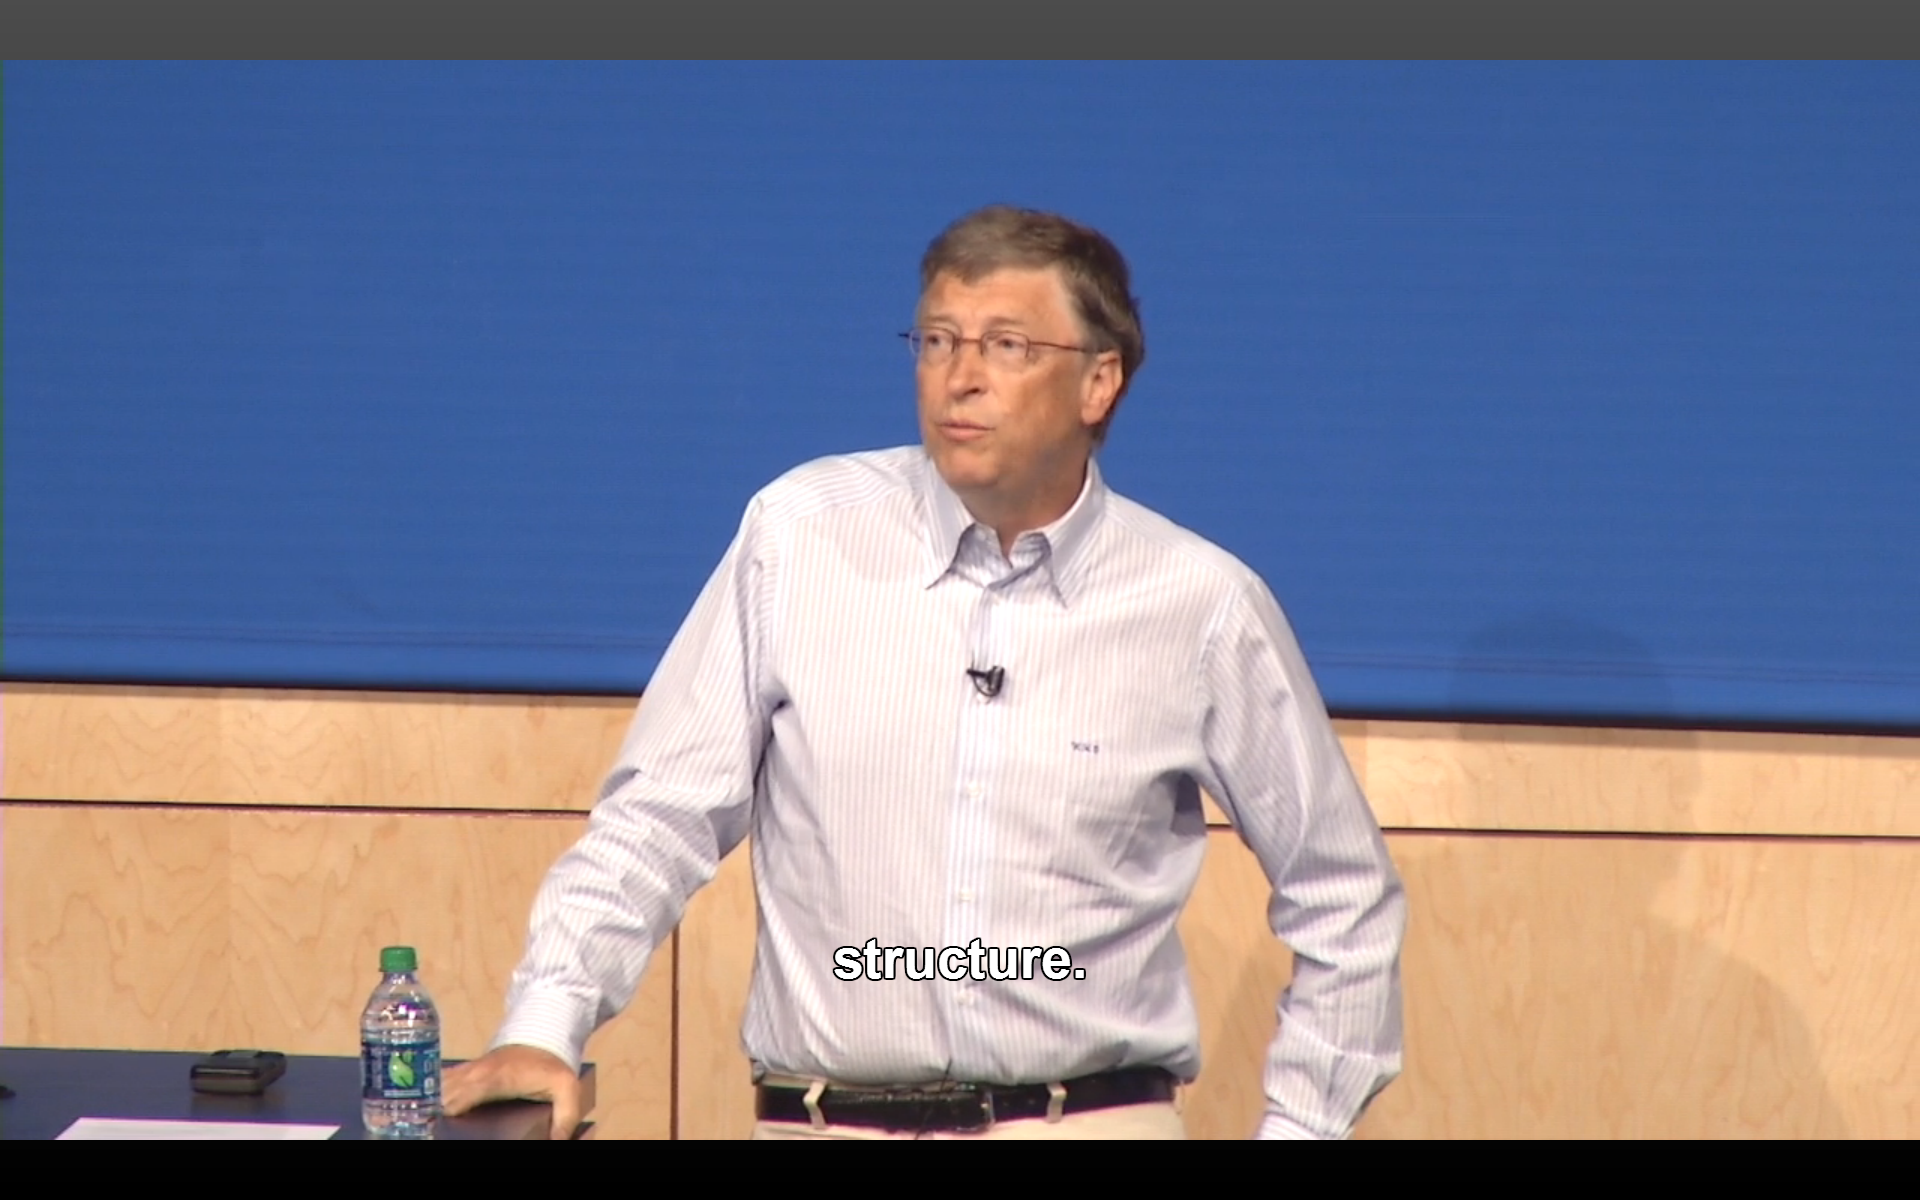 Bill Gates Microsoft Research Faculty Summit 2013